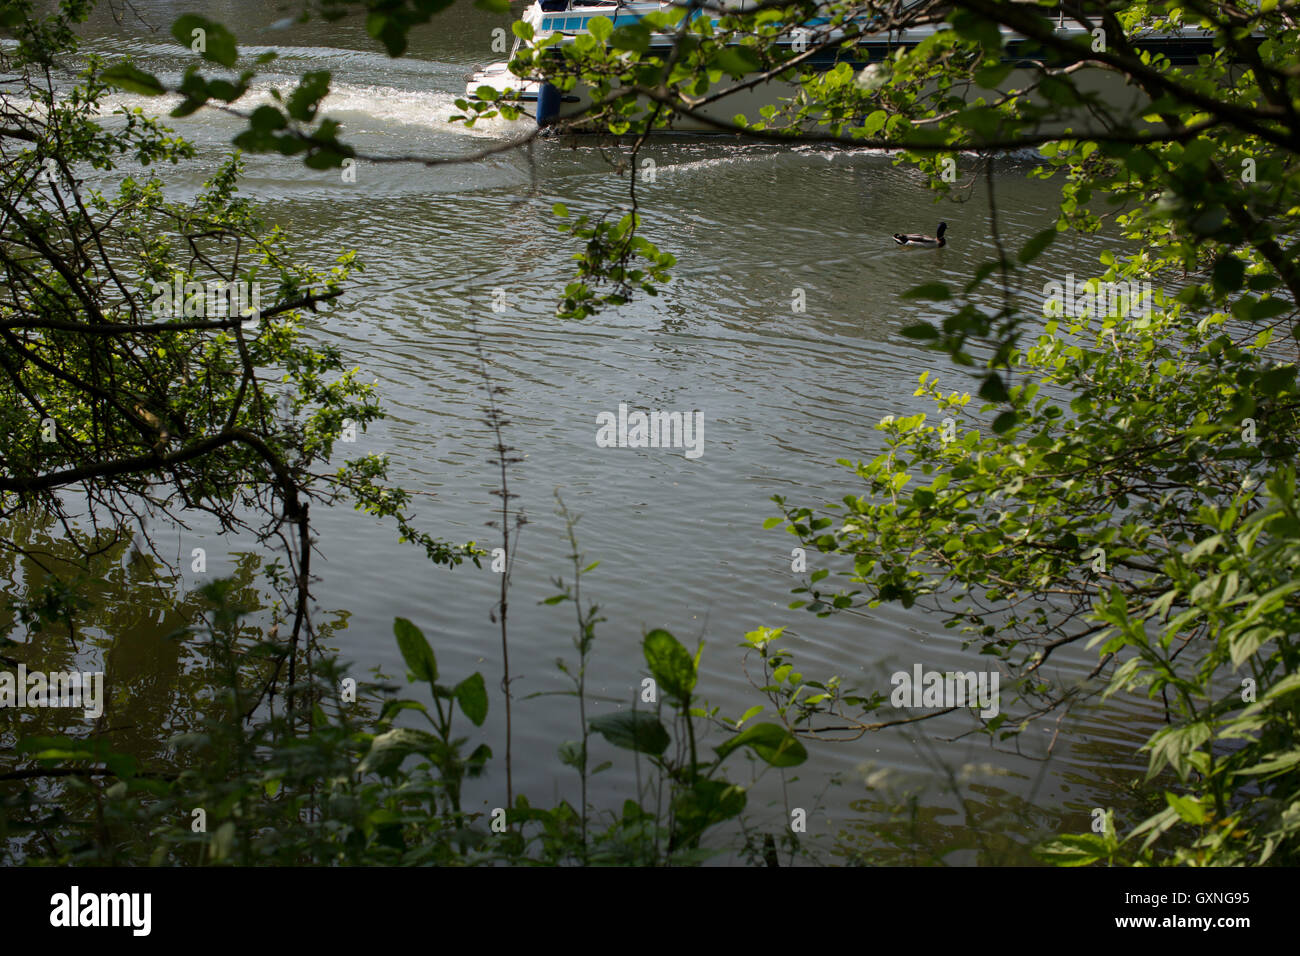 A small motor boat sailign on the river thames at Abingdon in OXfordshire, UK. - Stock Image